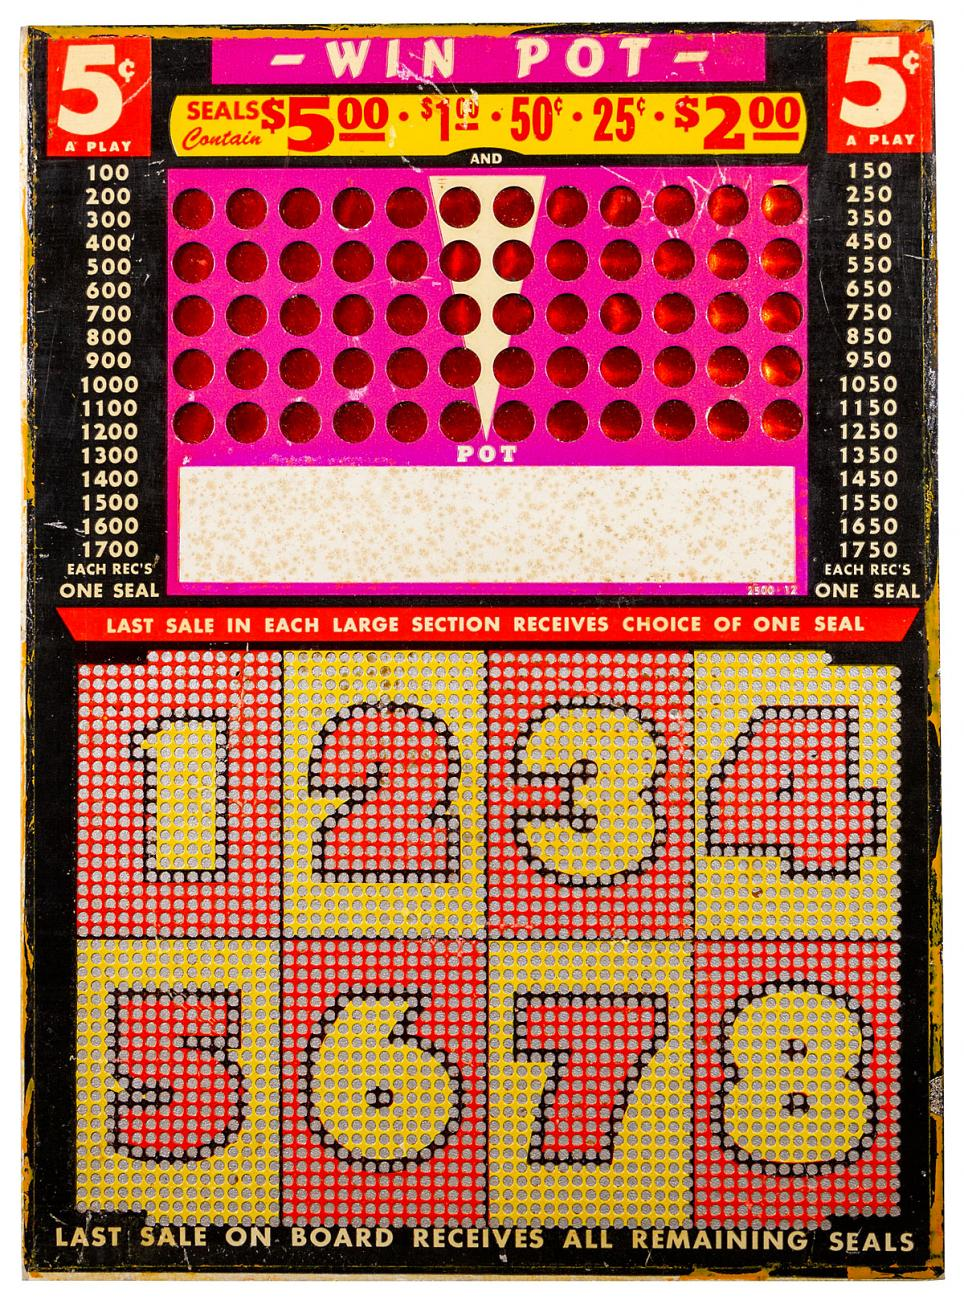 Win Pot 5 Cent 1940's Punchboard